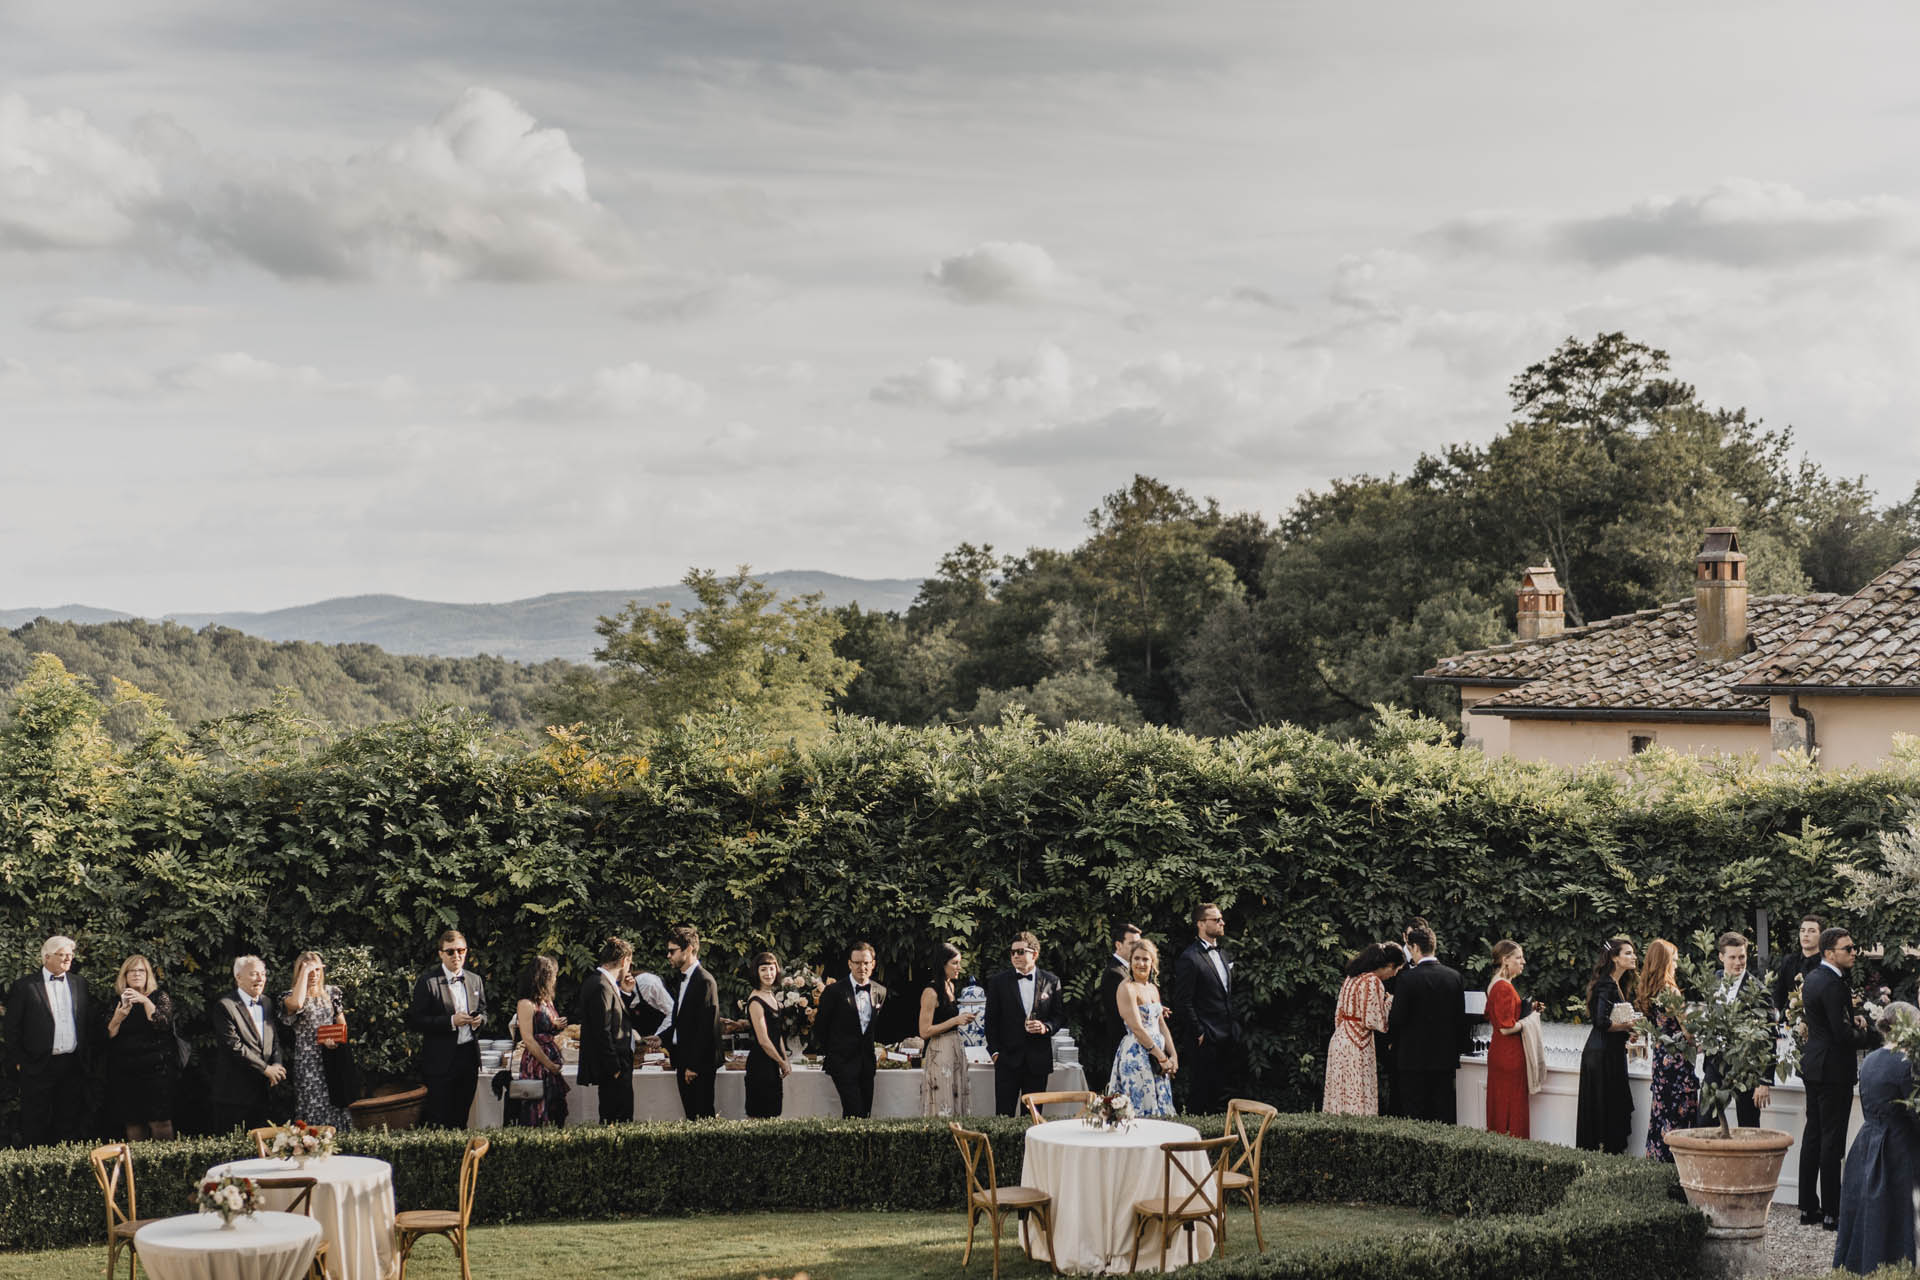 - 60 :: Intimate elegance: an intimate wedding at Il Borro :: Luxury wedding photography - 59 ::  - 60